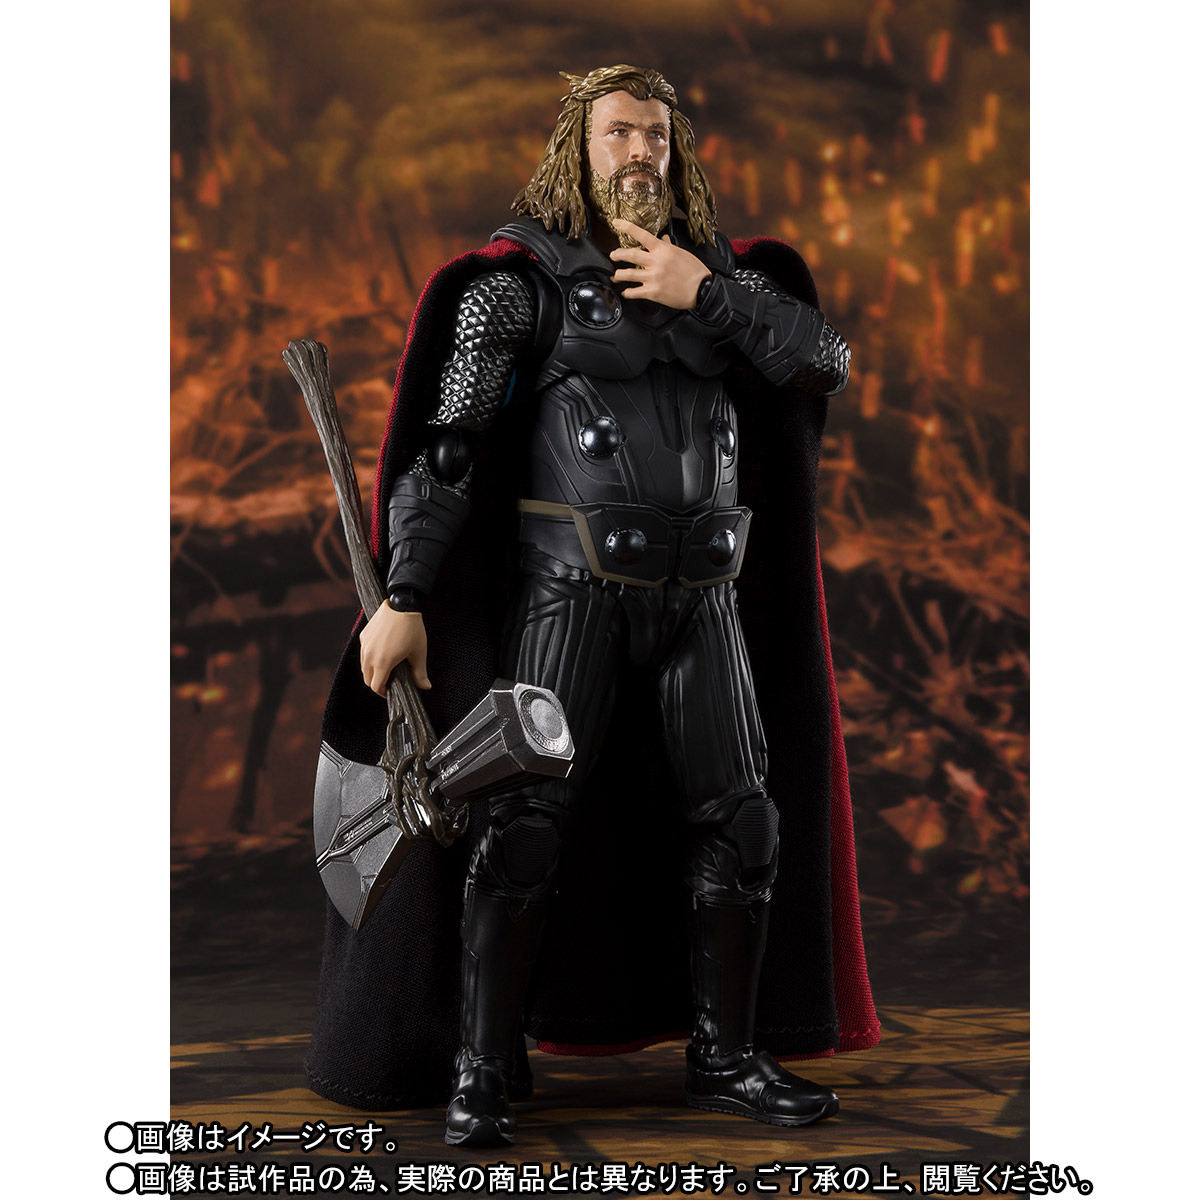 Dude Thor Brings the Thunder and Cheese Whiz with S.H. Figuarts Figure